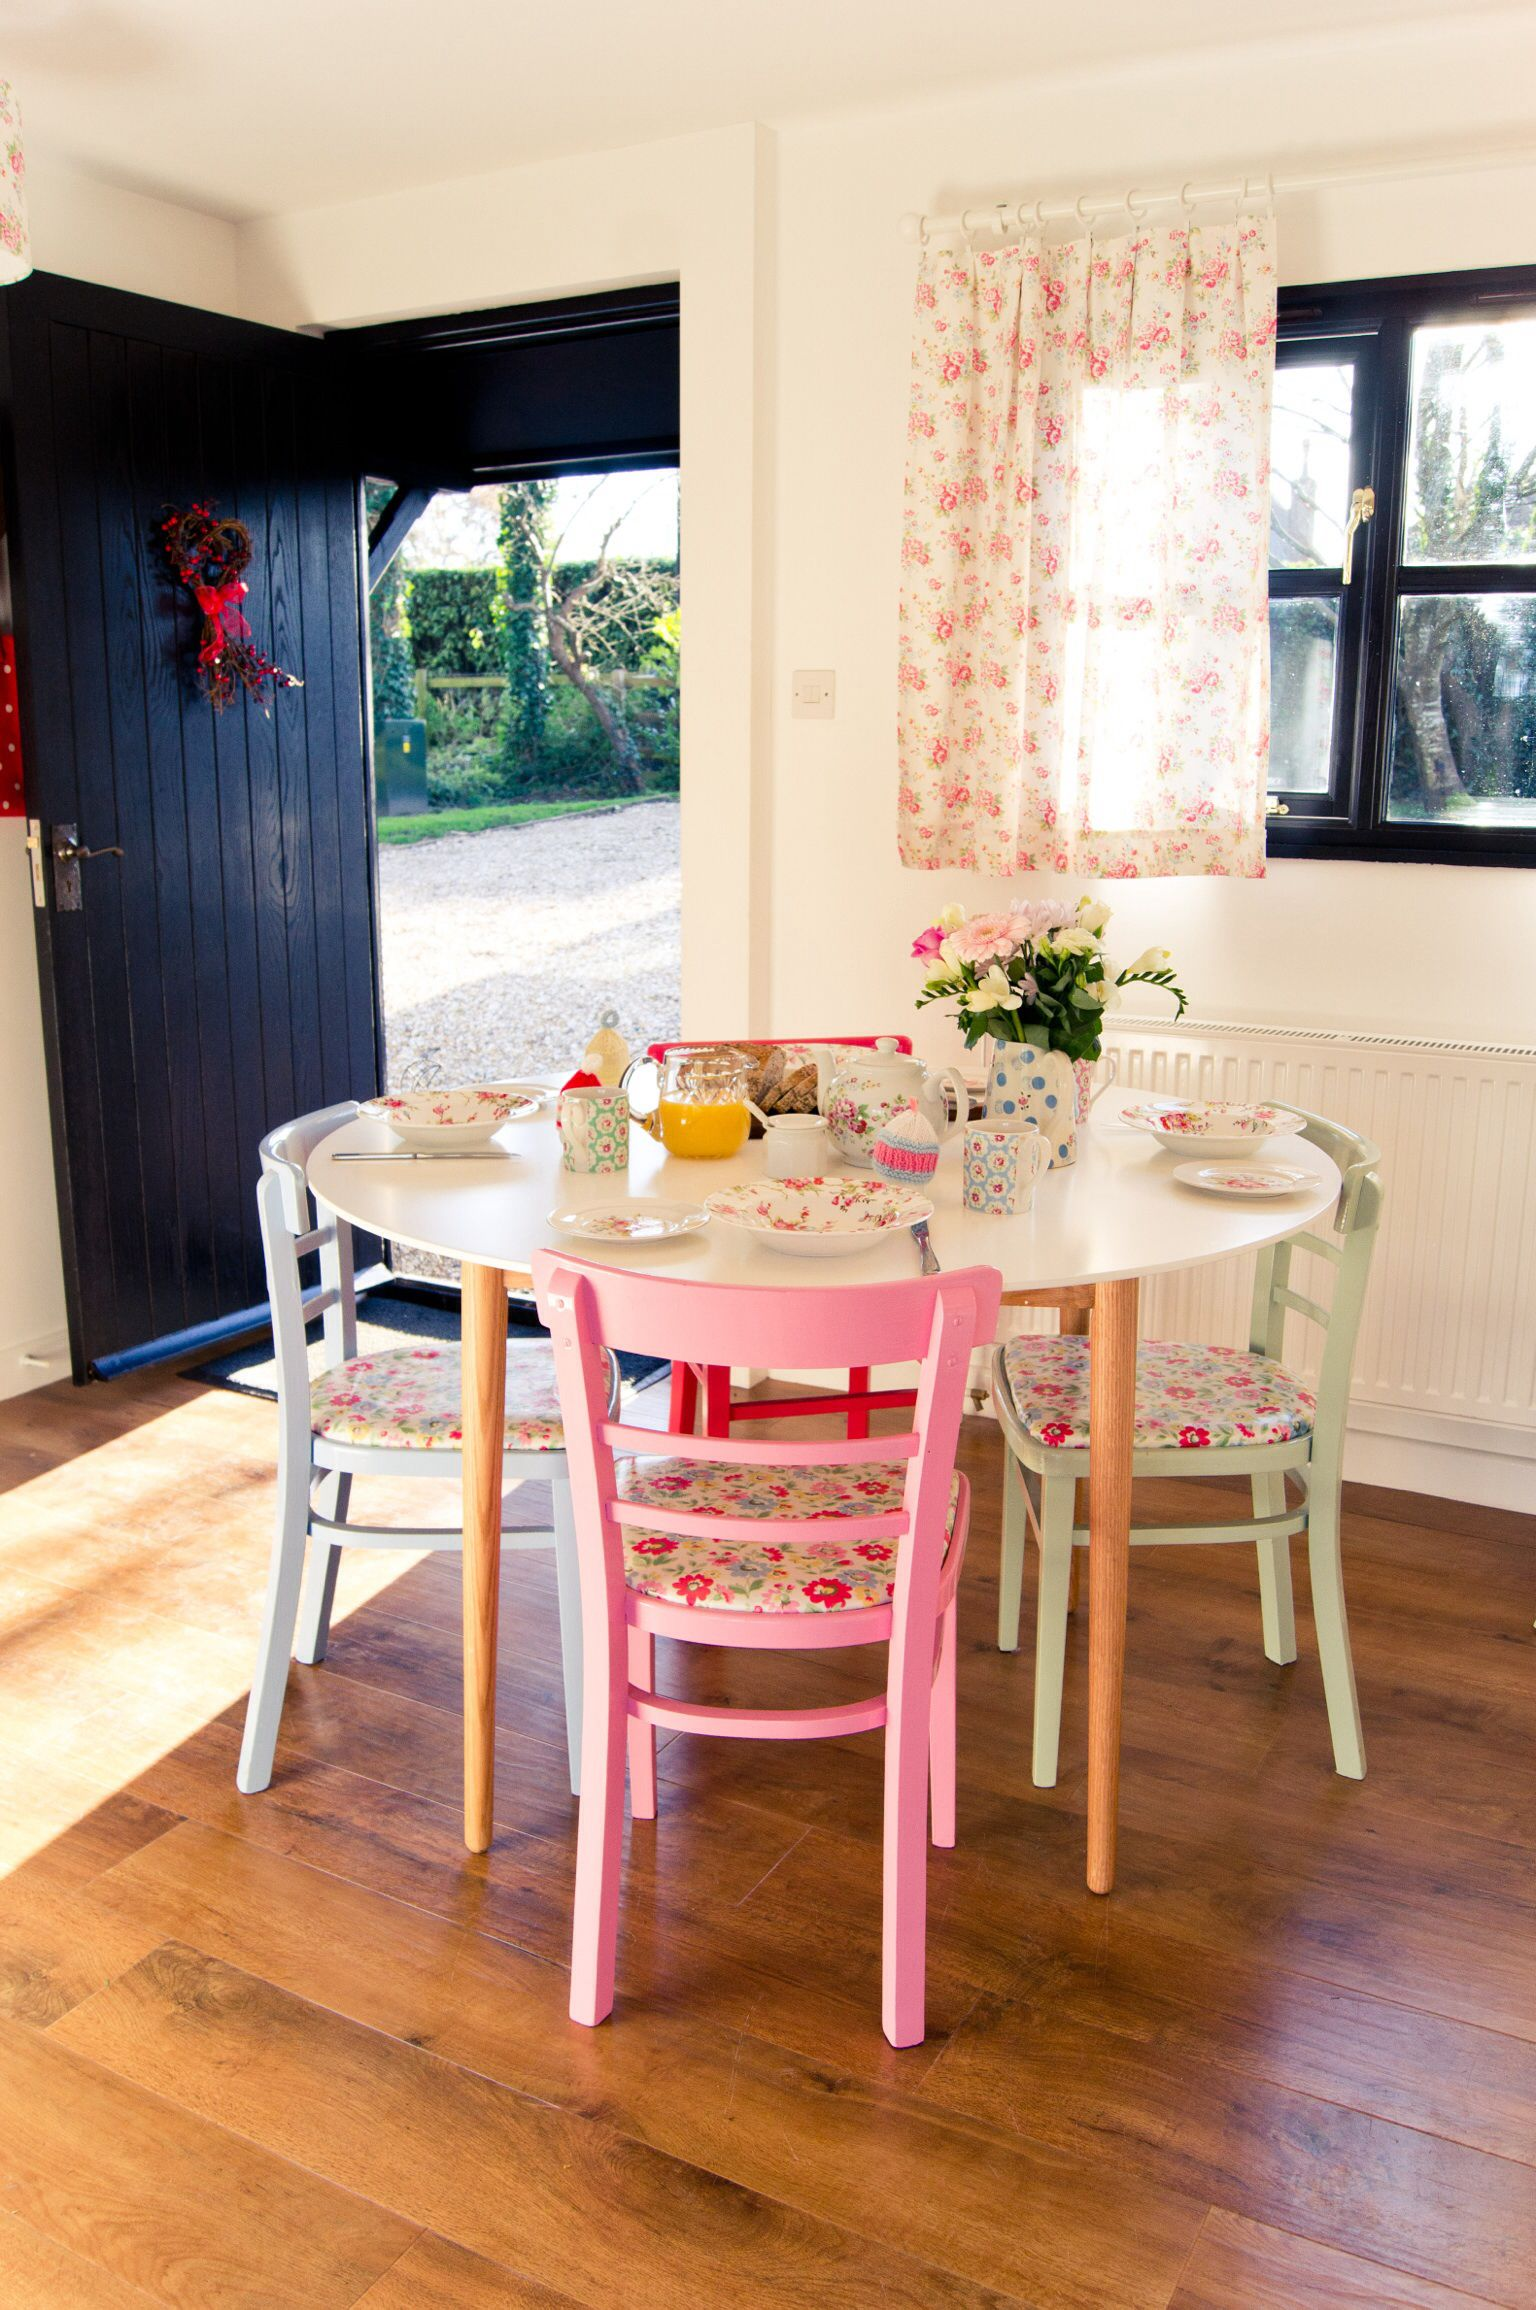 Cath Kidston Inspired Table And Chairs Love The Colours All Put Together And A Great Way To